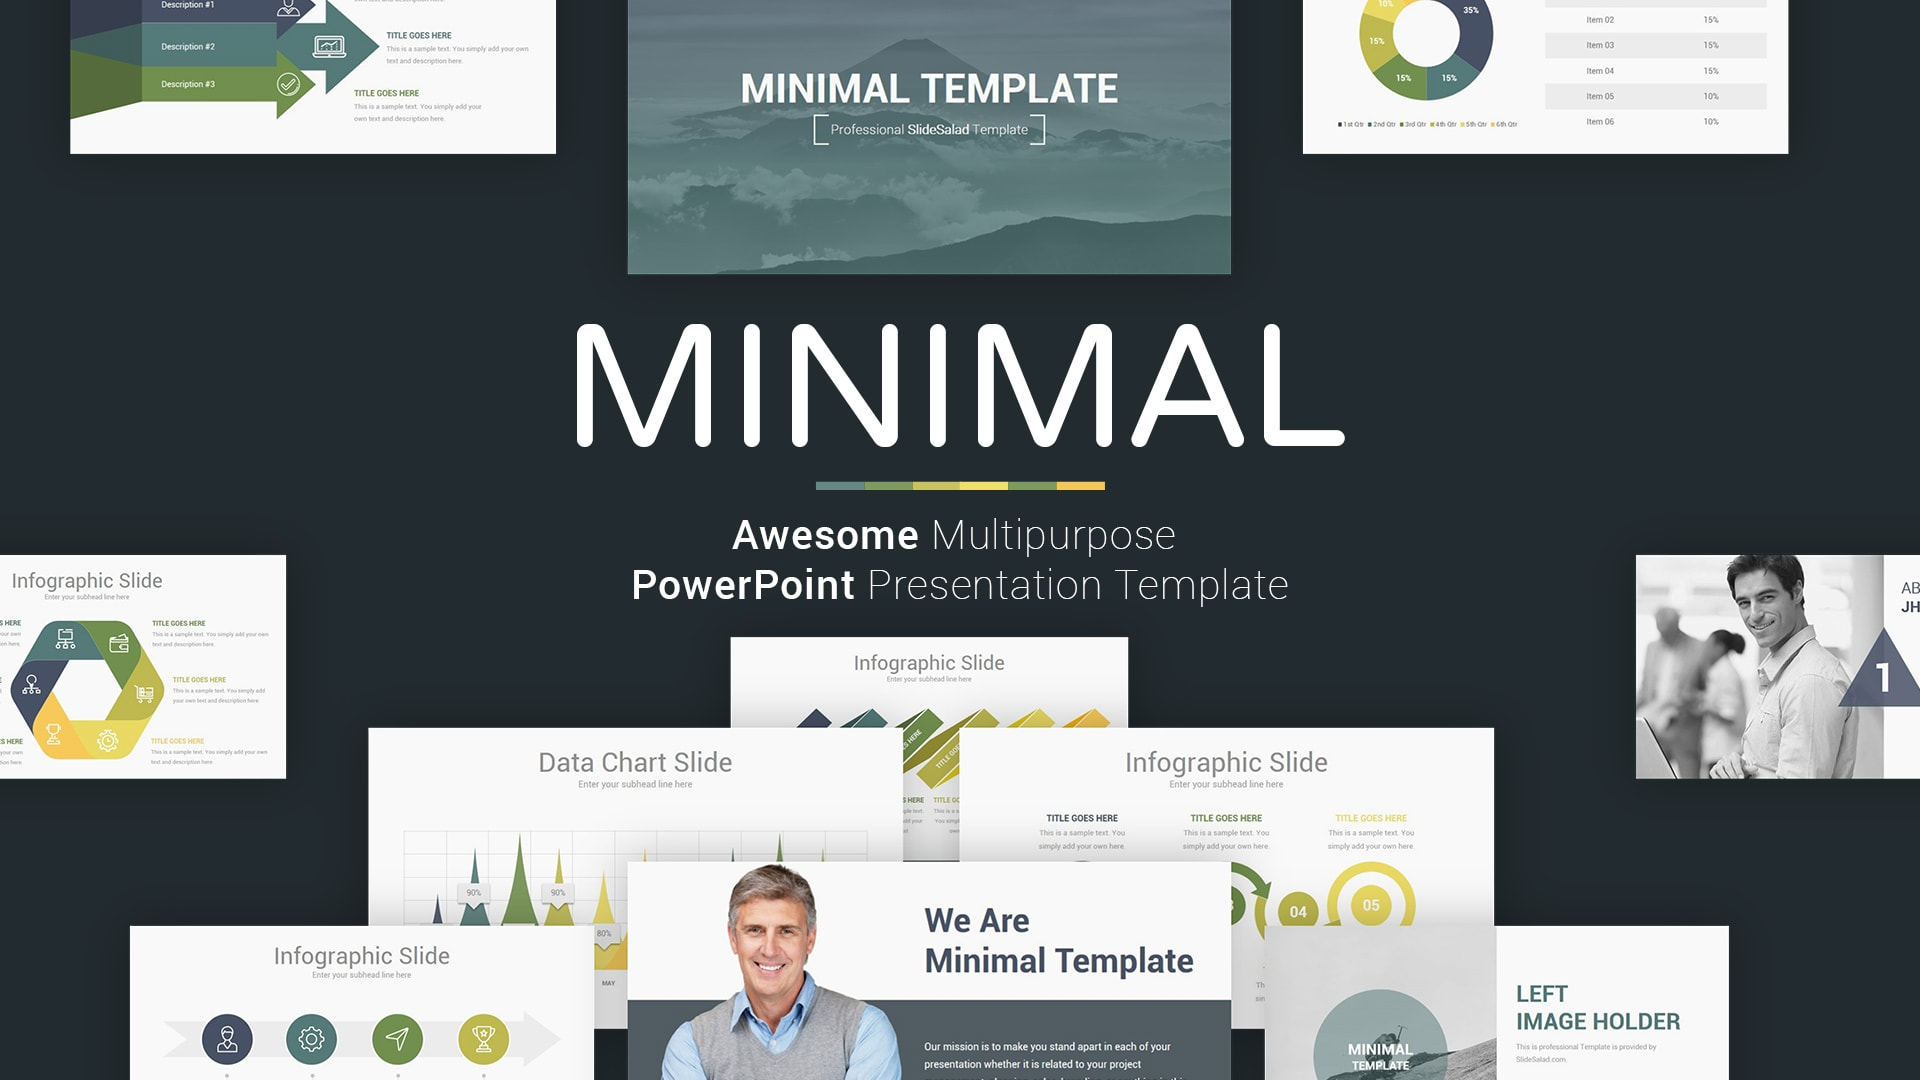 Professional Minimal PowerPoint Presentation Template Design - Professional PowerPoint PPT Themes for Awesome Presentations